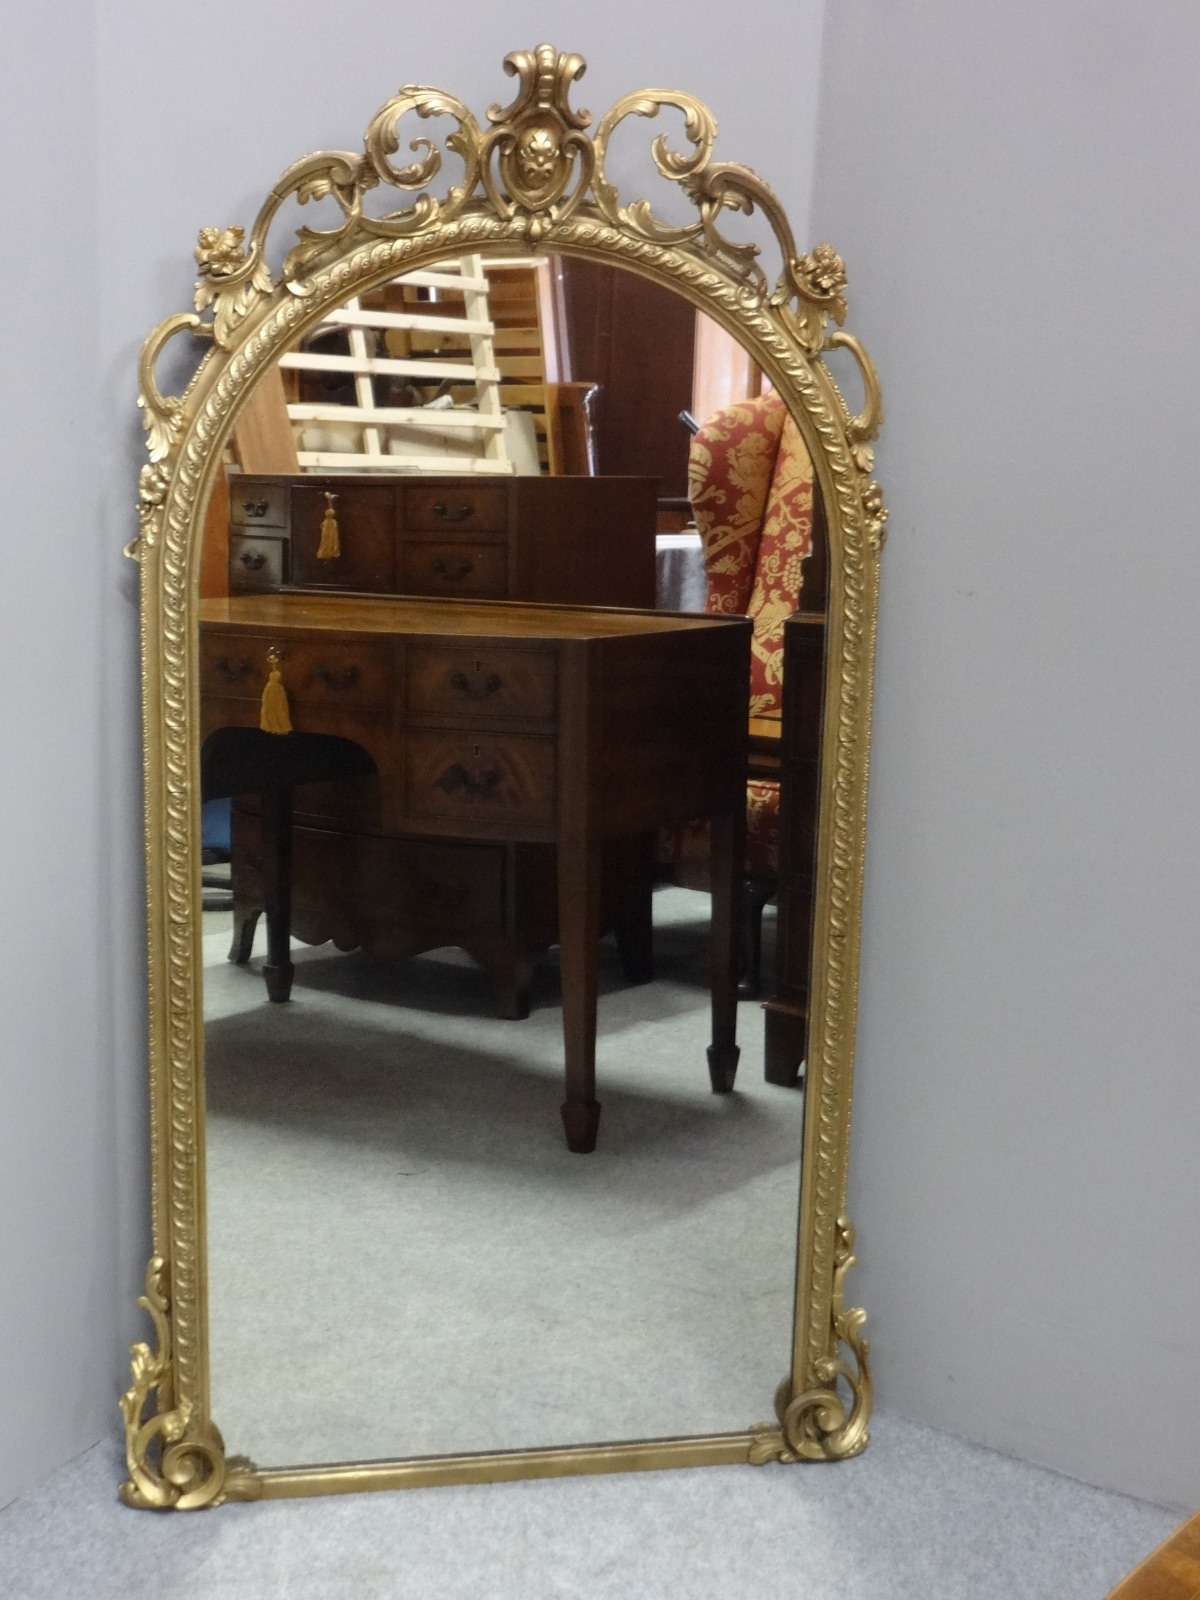 Good Victorian English Arched Top Gilt Mirror (1 of 1)